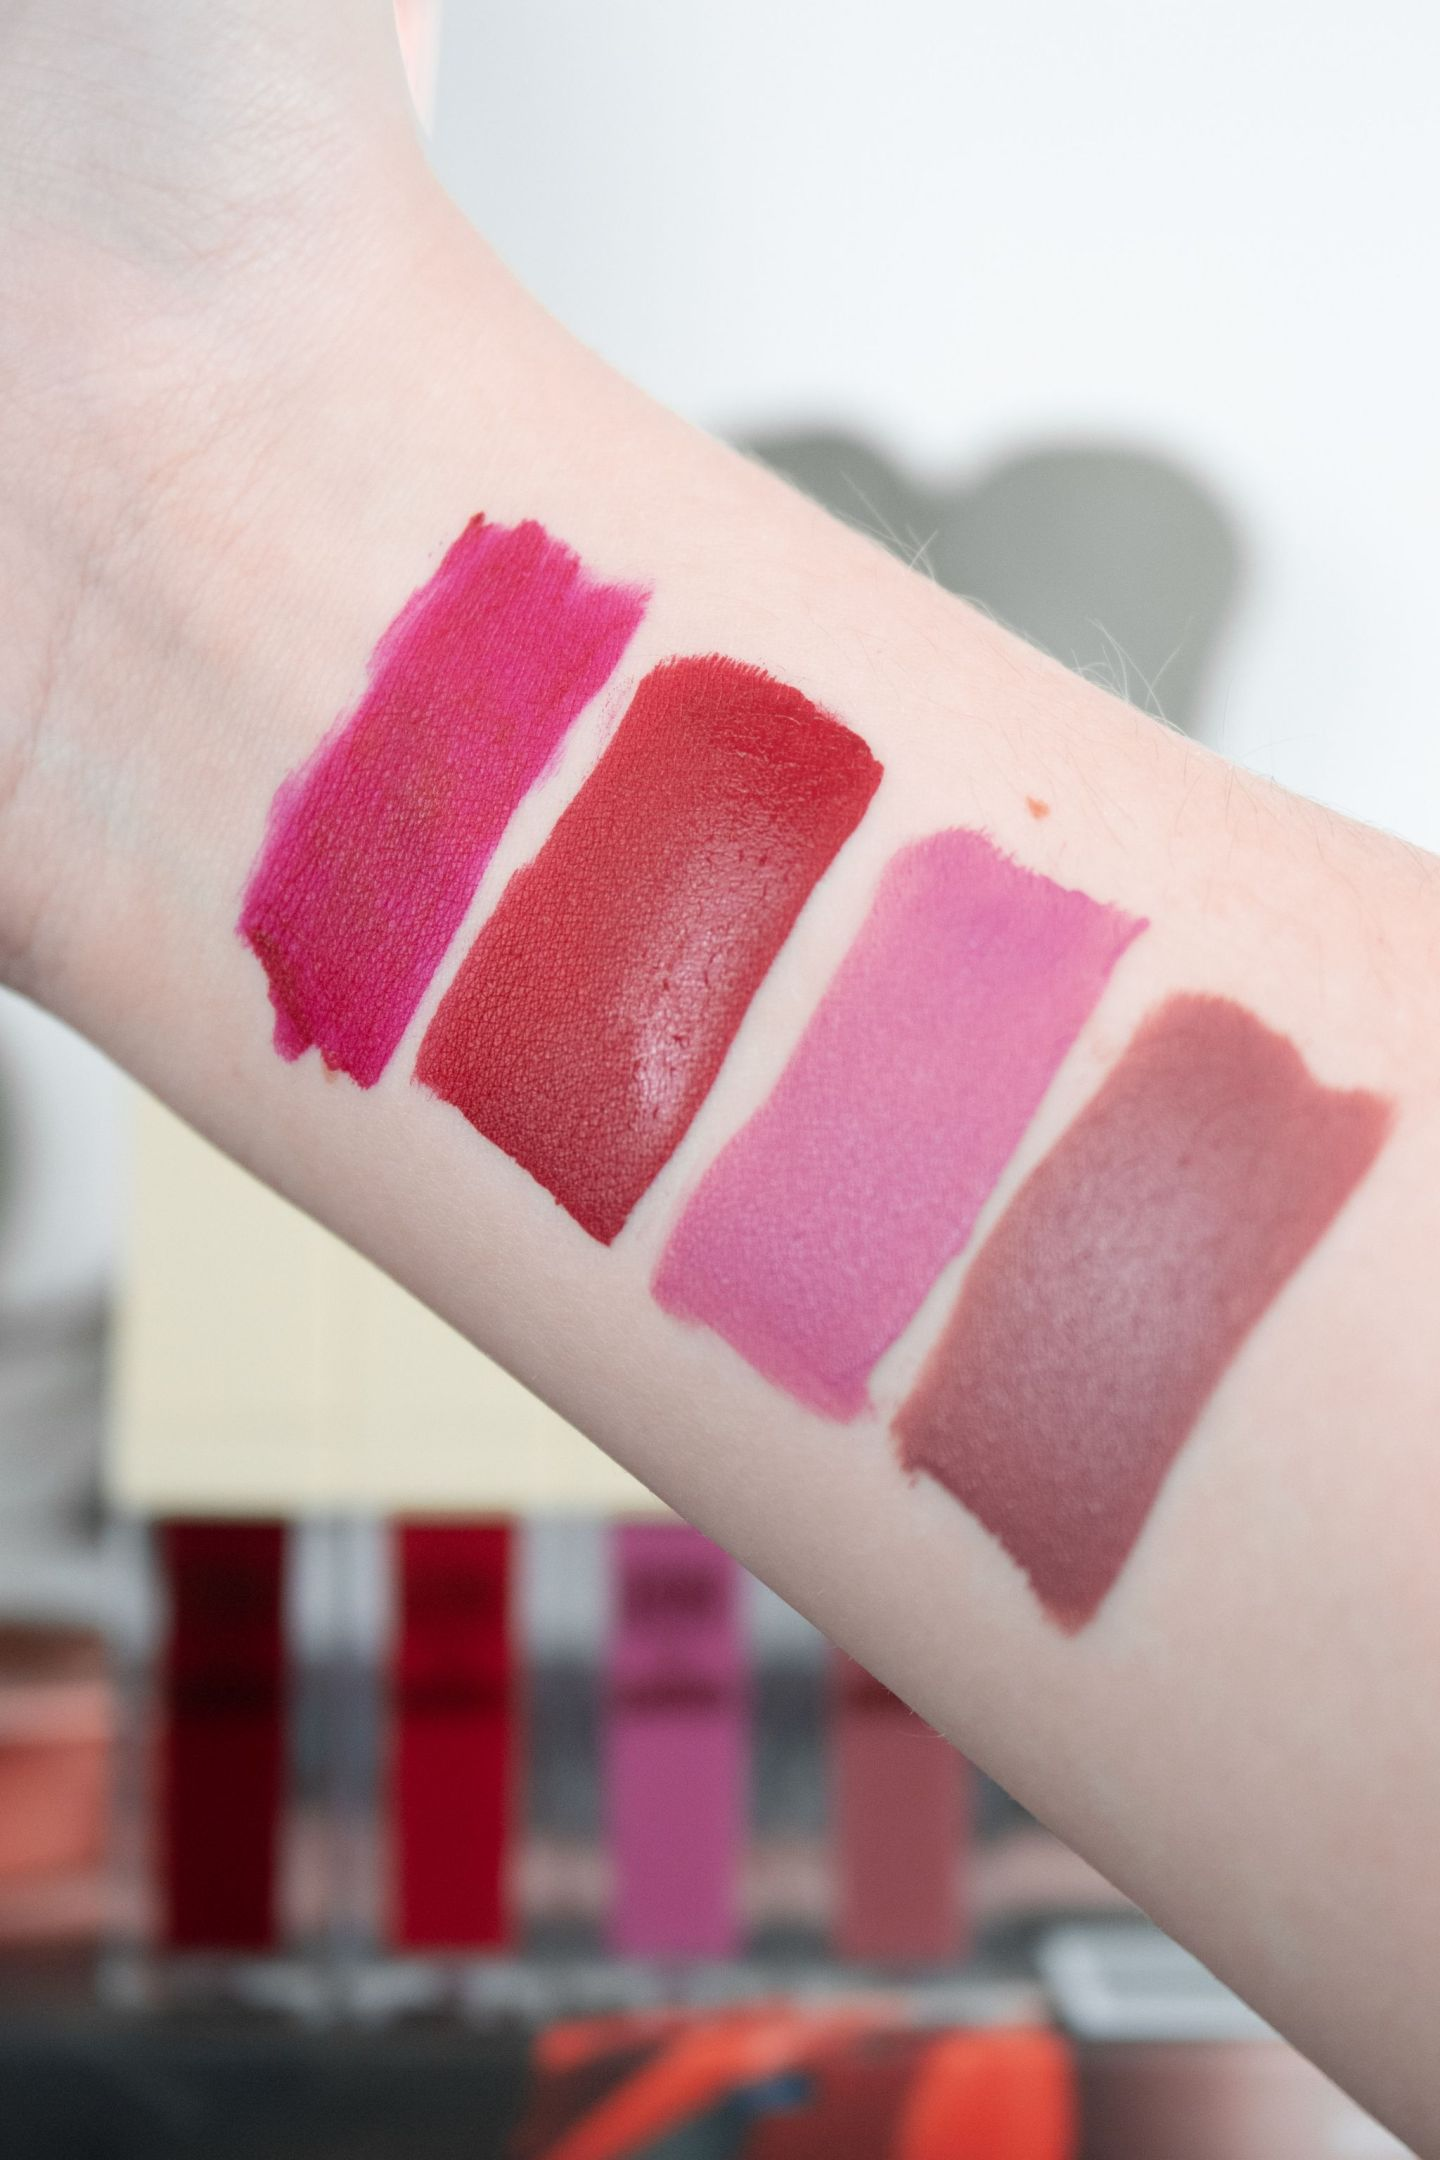 Pixi MatteLast Liquid Lipsticks Swatches